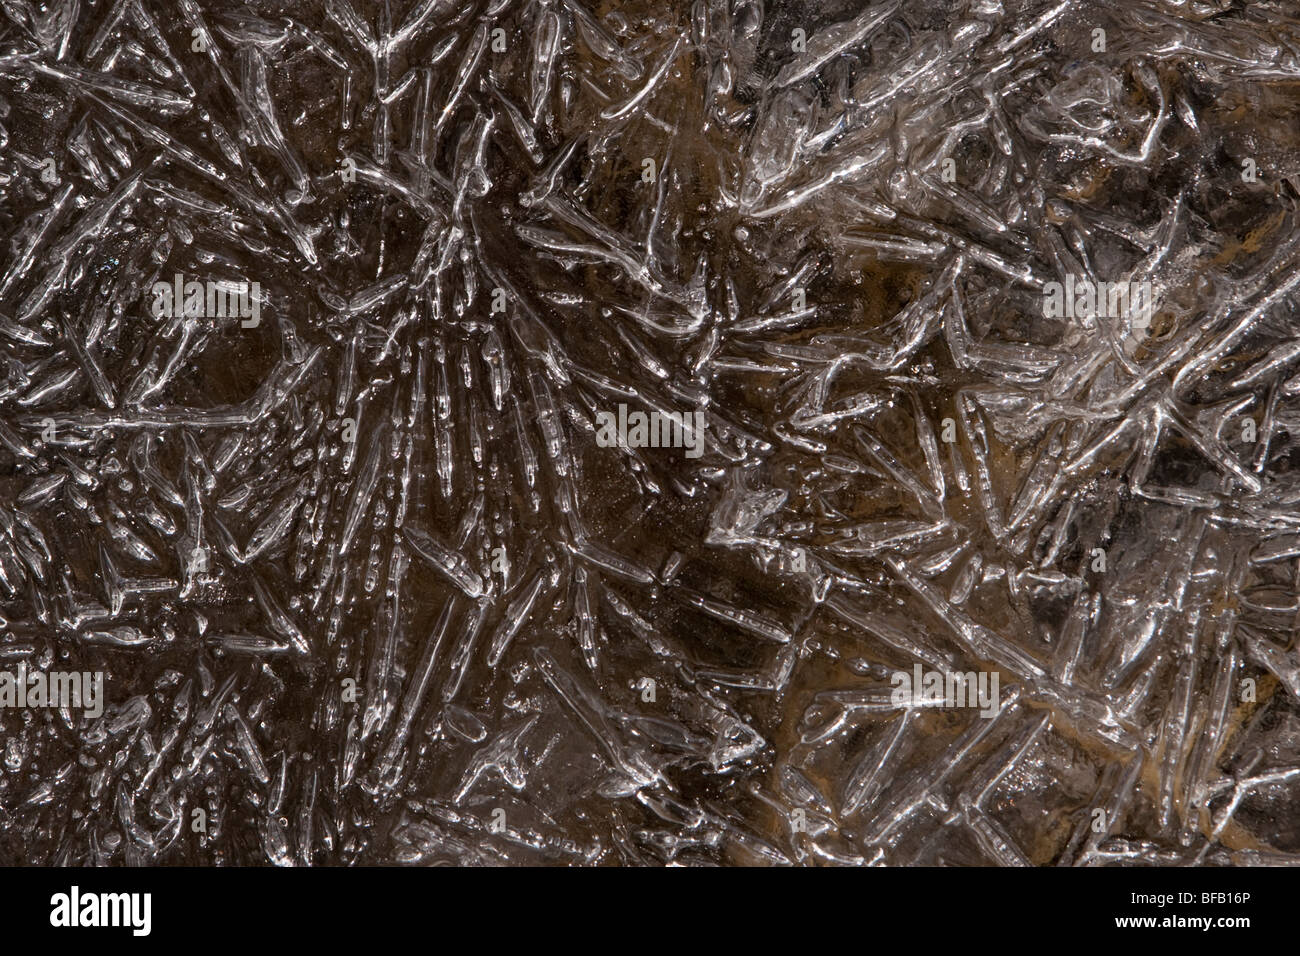 Frozen ice crystals photographed at Summit Lake at Mount Evans in Colorado. - Stock Image